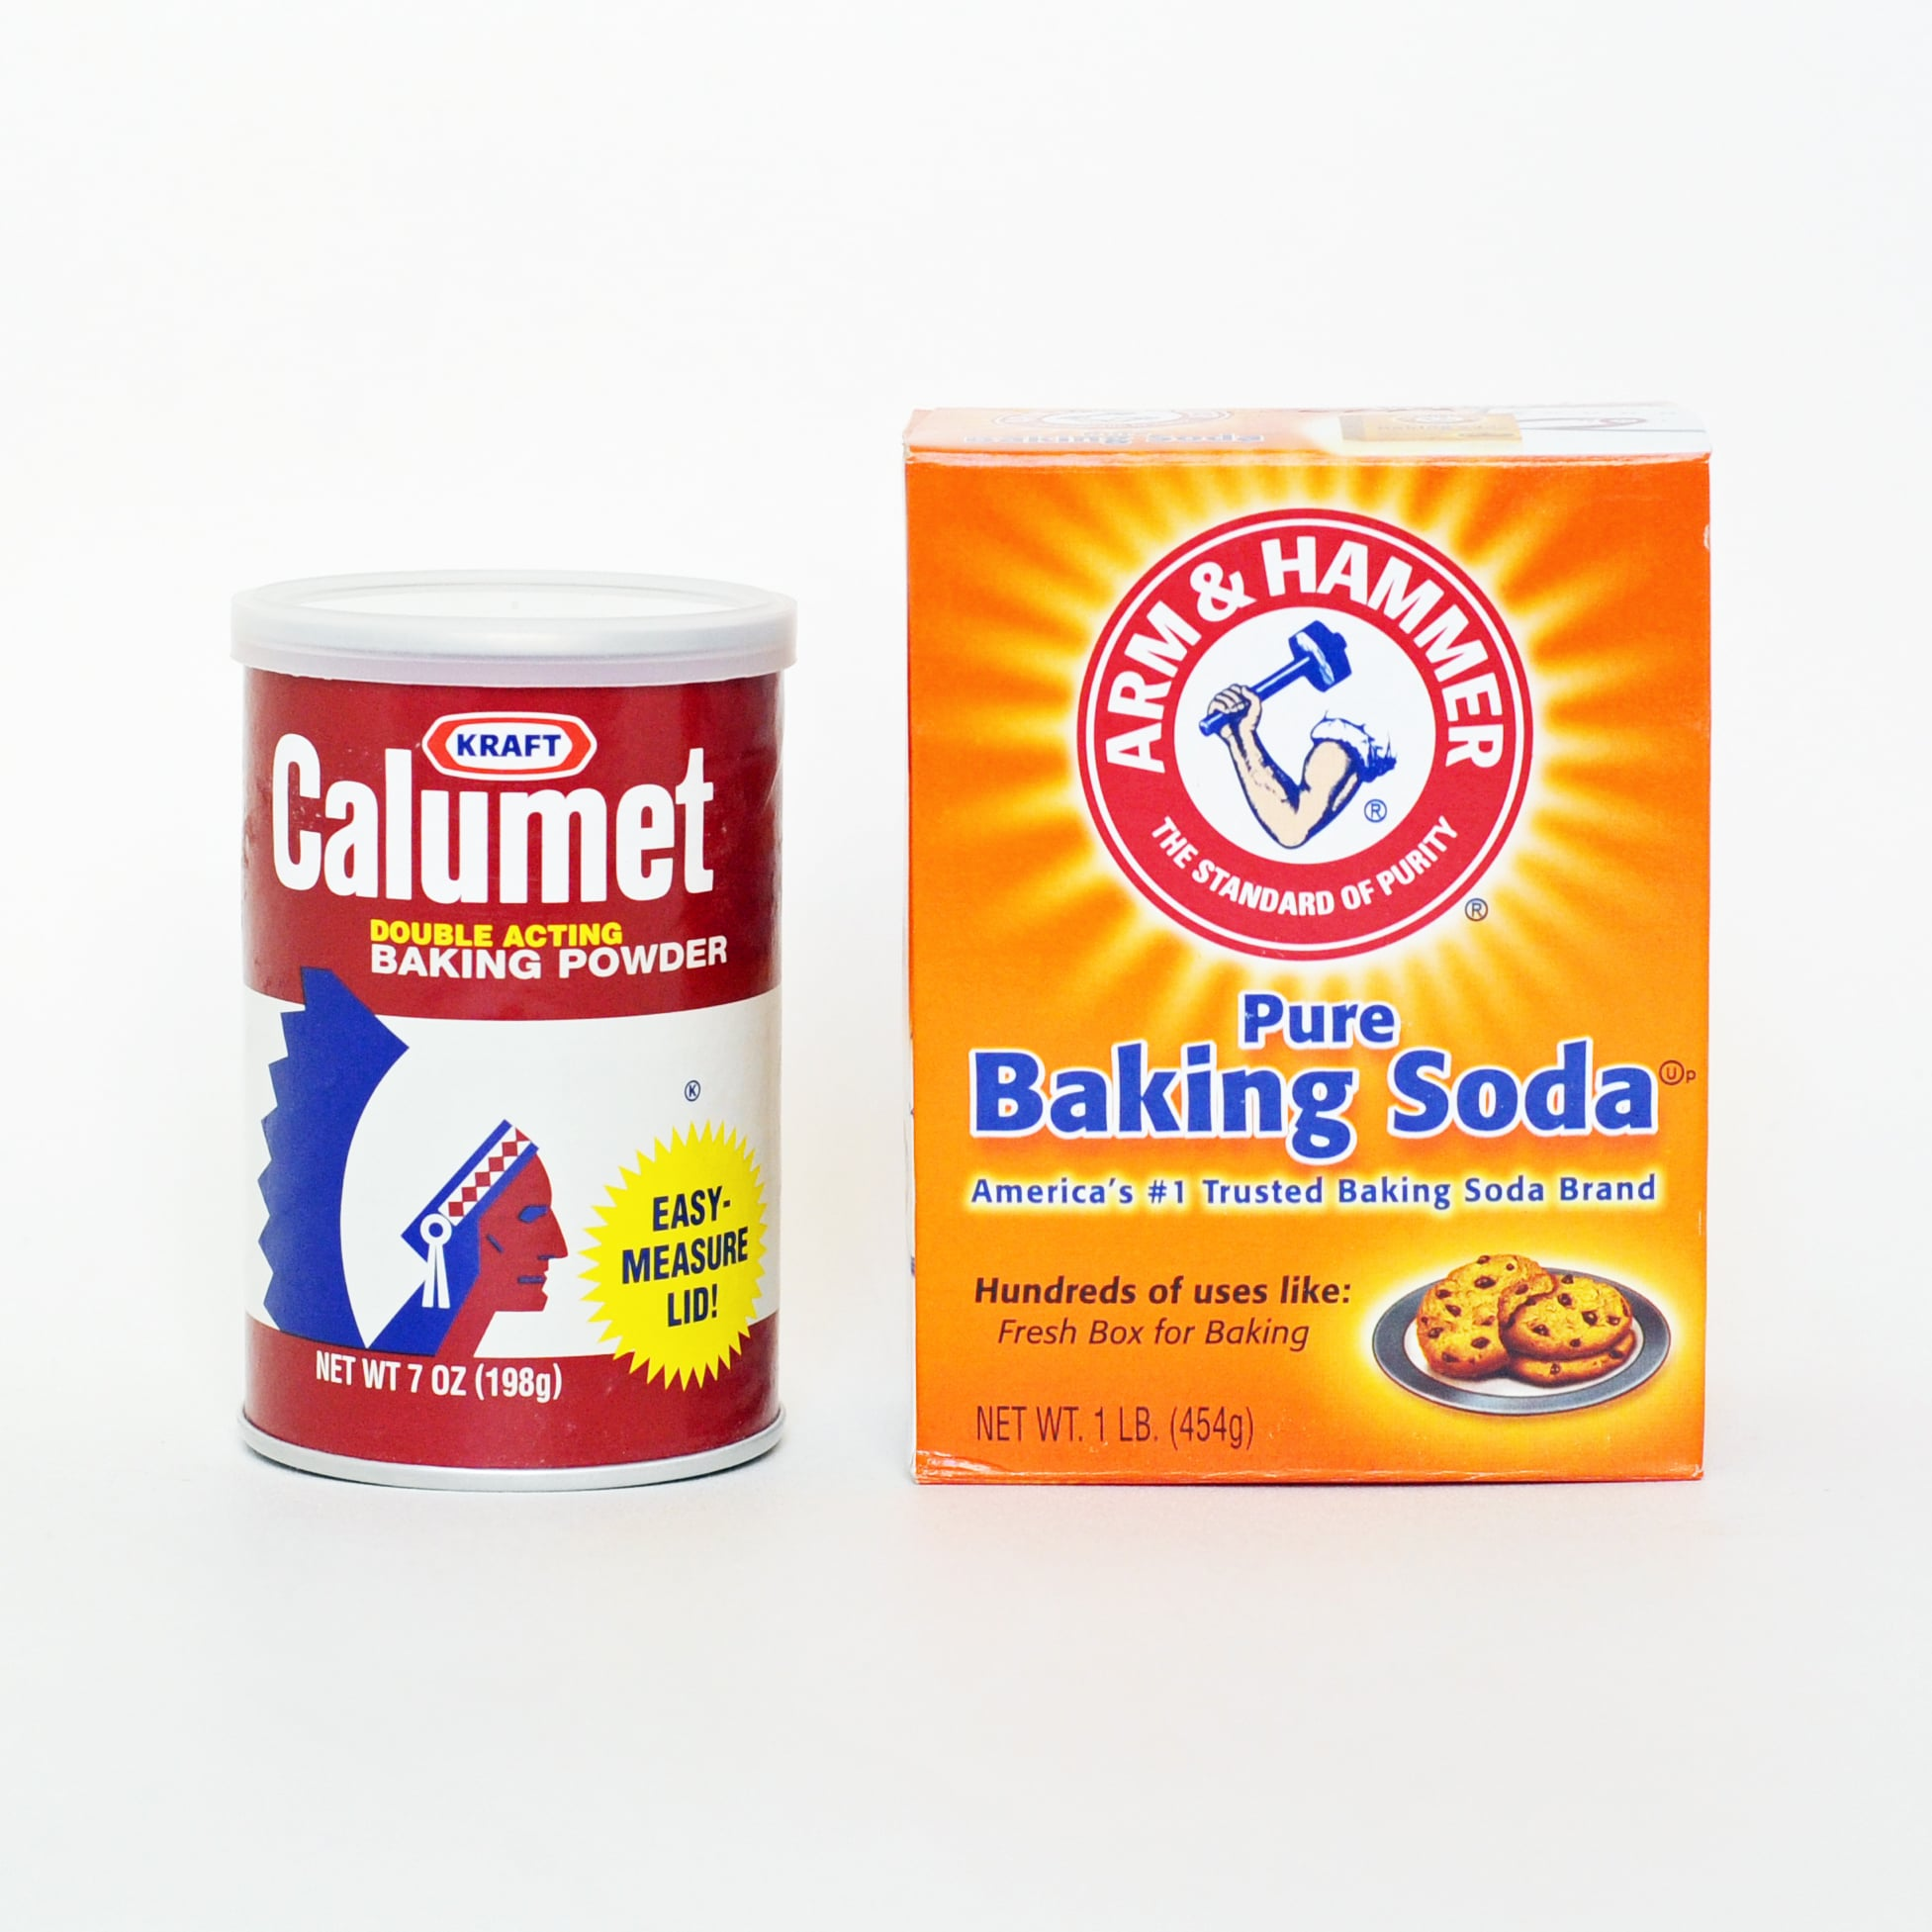 How to Test Baking Powder and Baking Soda For Freshness